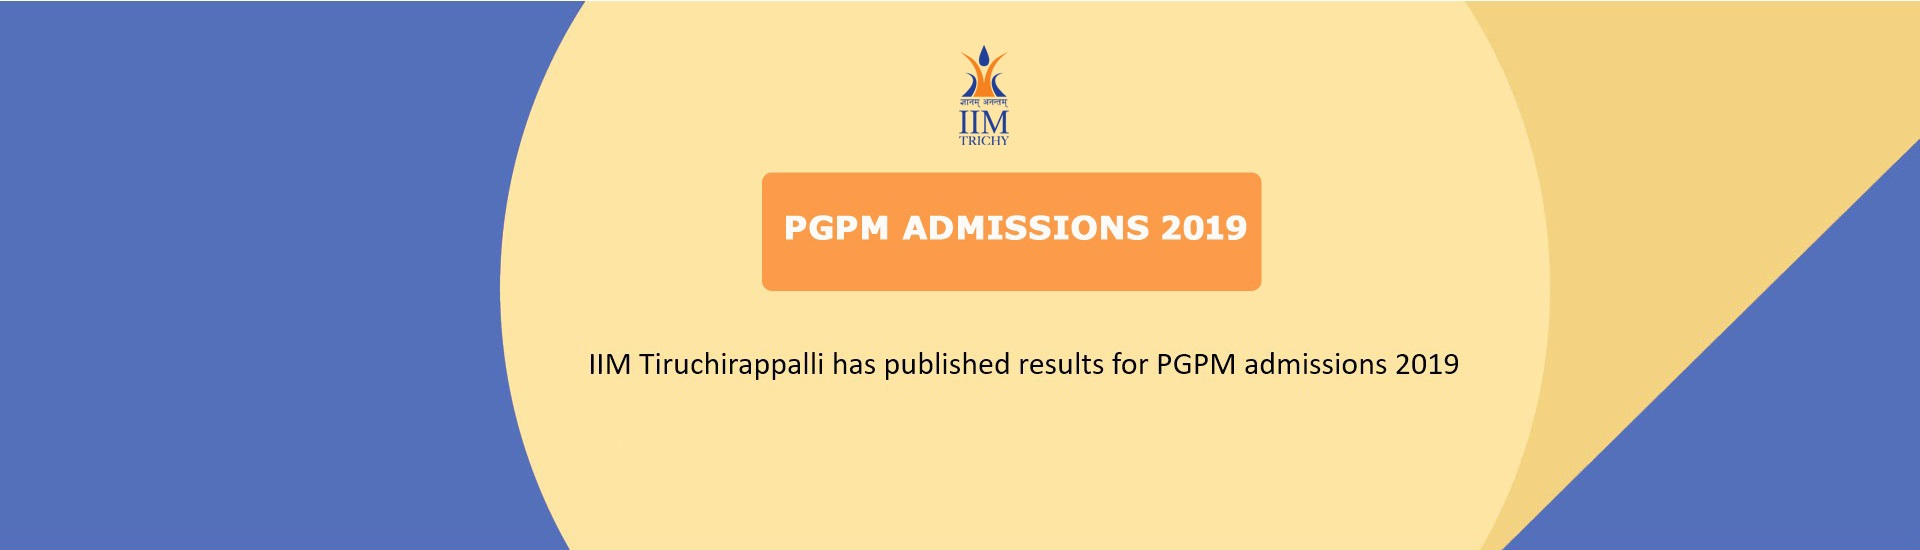 PGPM Admissions 2019